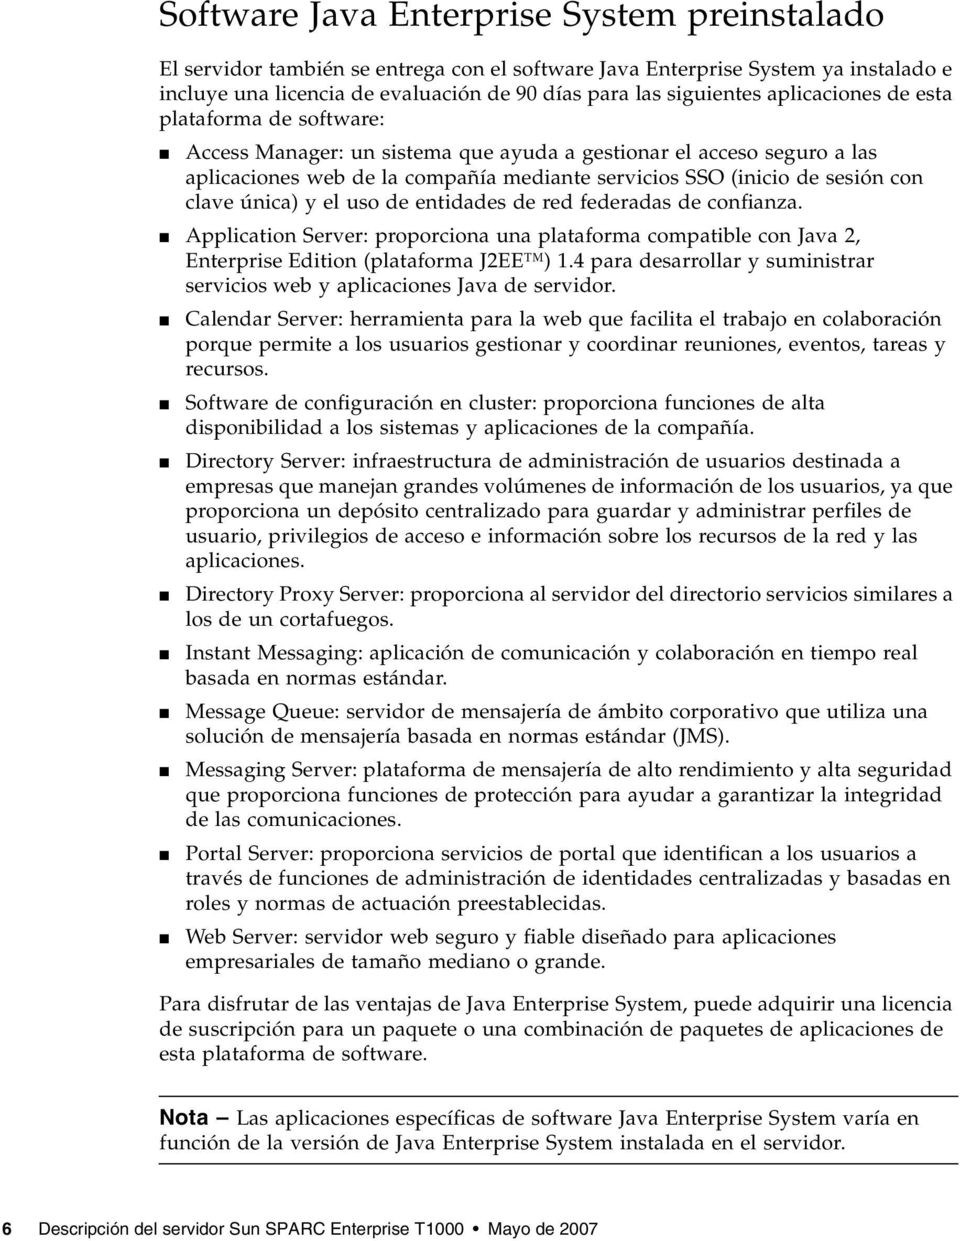 única) y el uso de entidades de red federadas de confianza. Application Server: proporciona una plataforma compatible con Java 2, Enterprise Edition (plataforma J2EE ) 1.